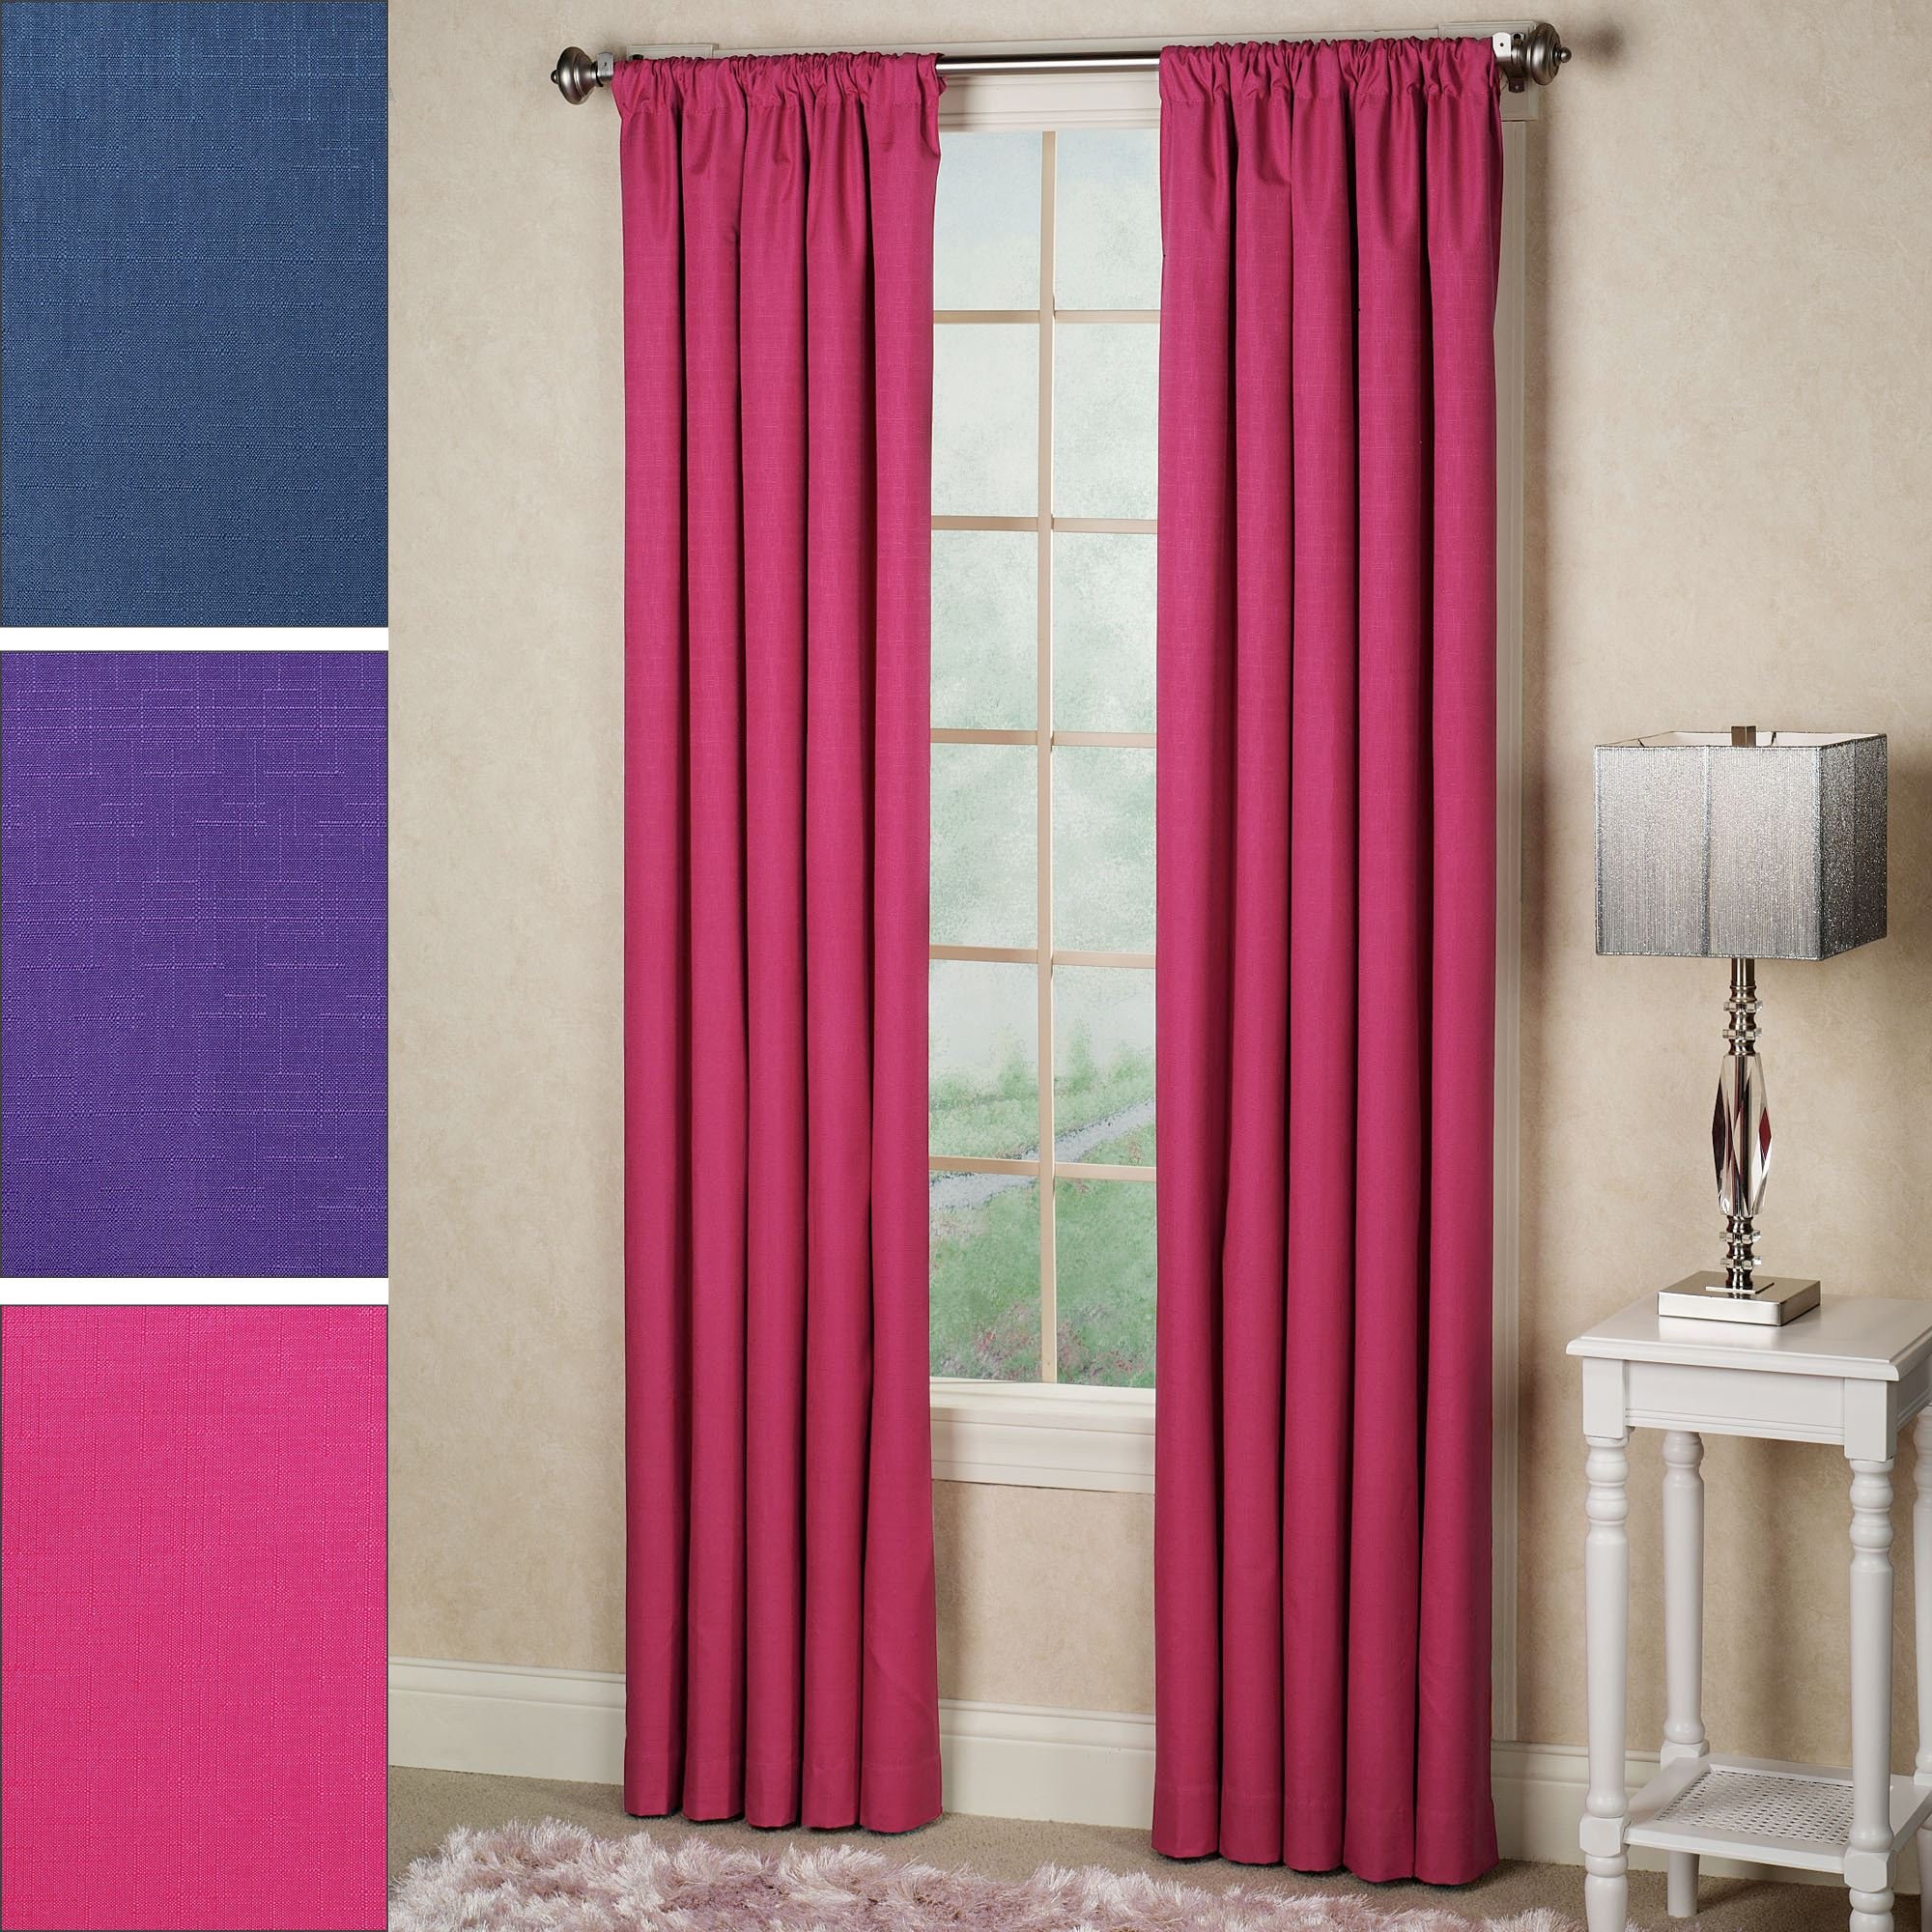 Kendall Bright Thermaback(tm) Blackout Curtain Panel Within Most Current Thermaback Blackout Window Curtains (View 8 of 20)